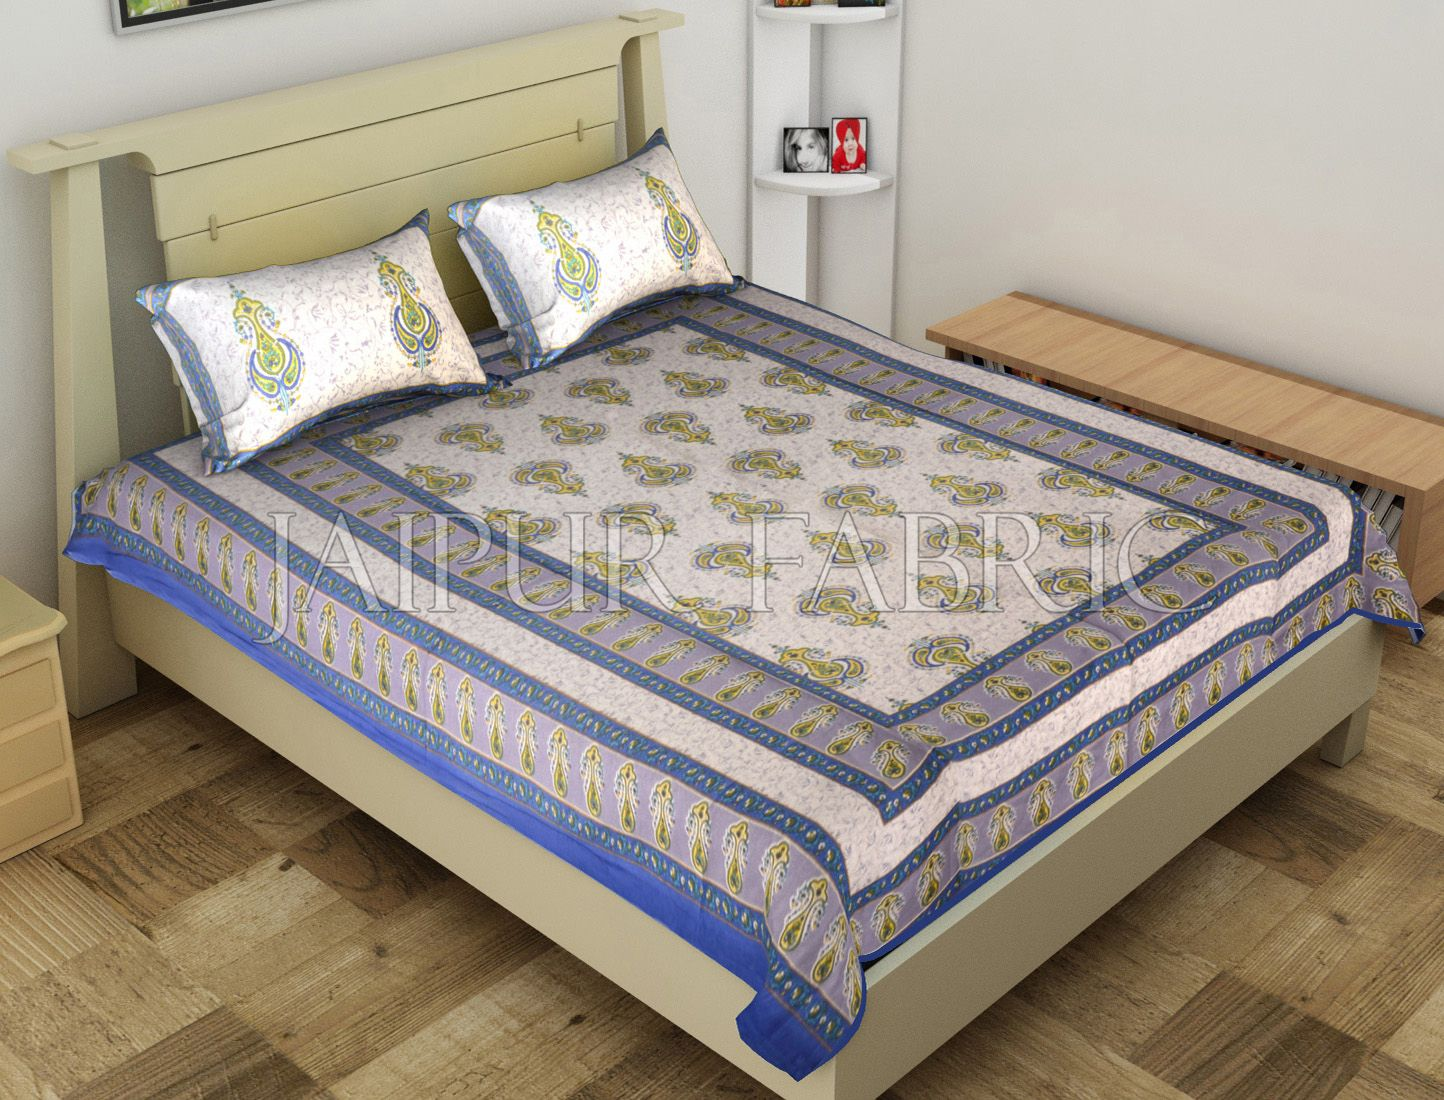 Blue Jaipuri Keri Printed Cotton Single Bed Sheet